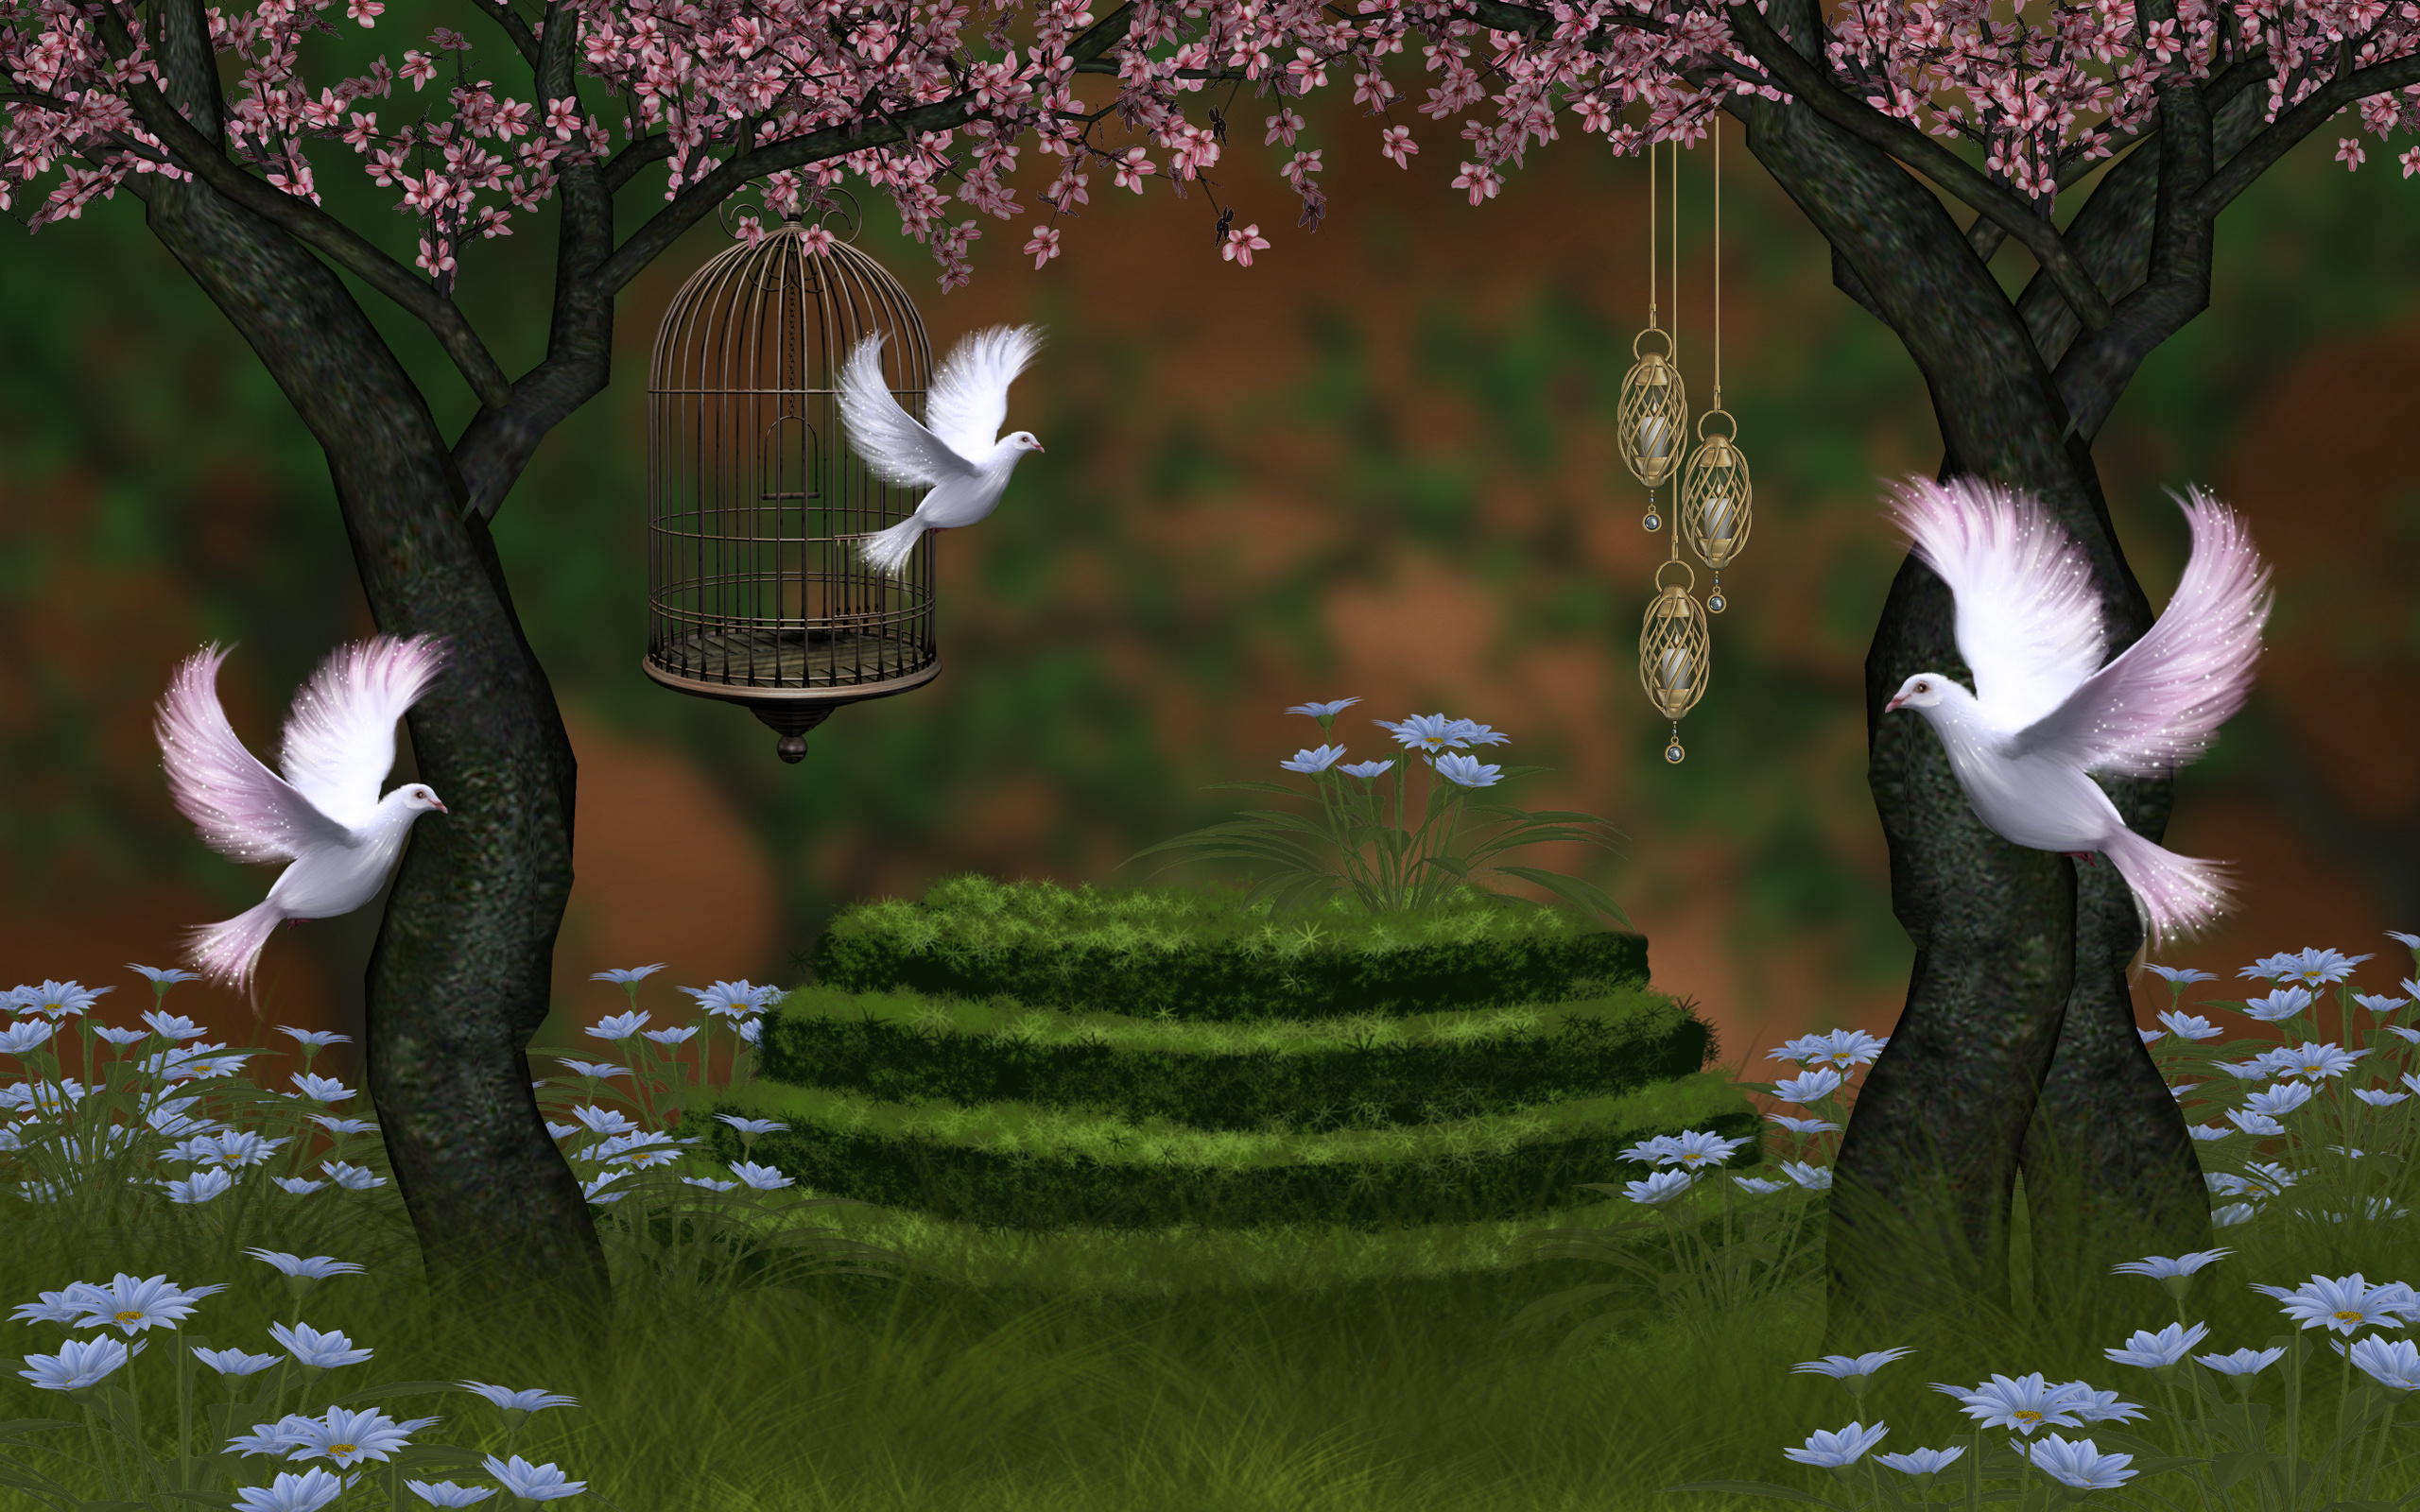 Beautiful Nature Wallpaper For Desktop In 3d With Pigeons And